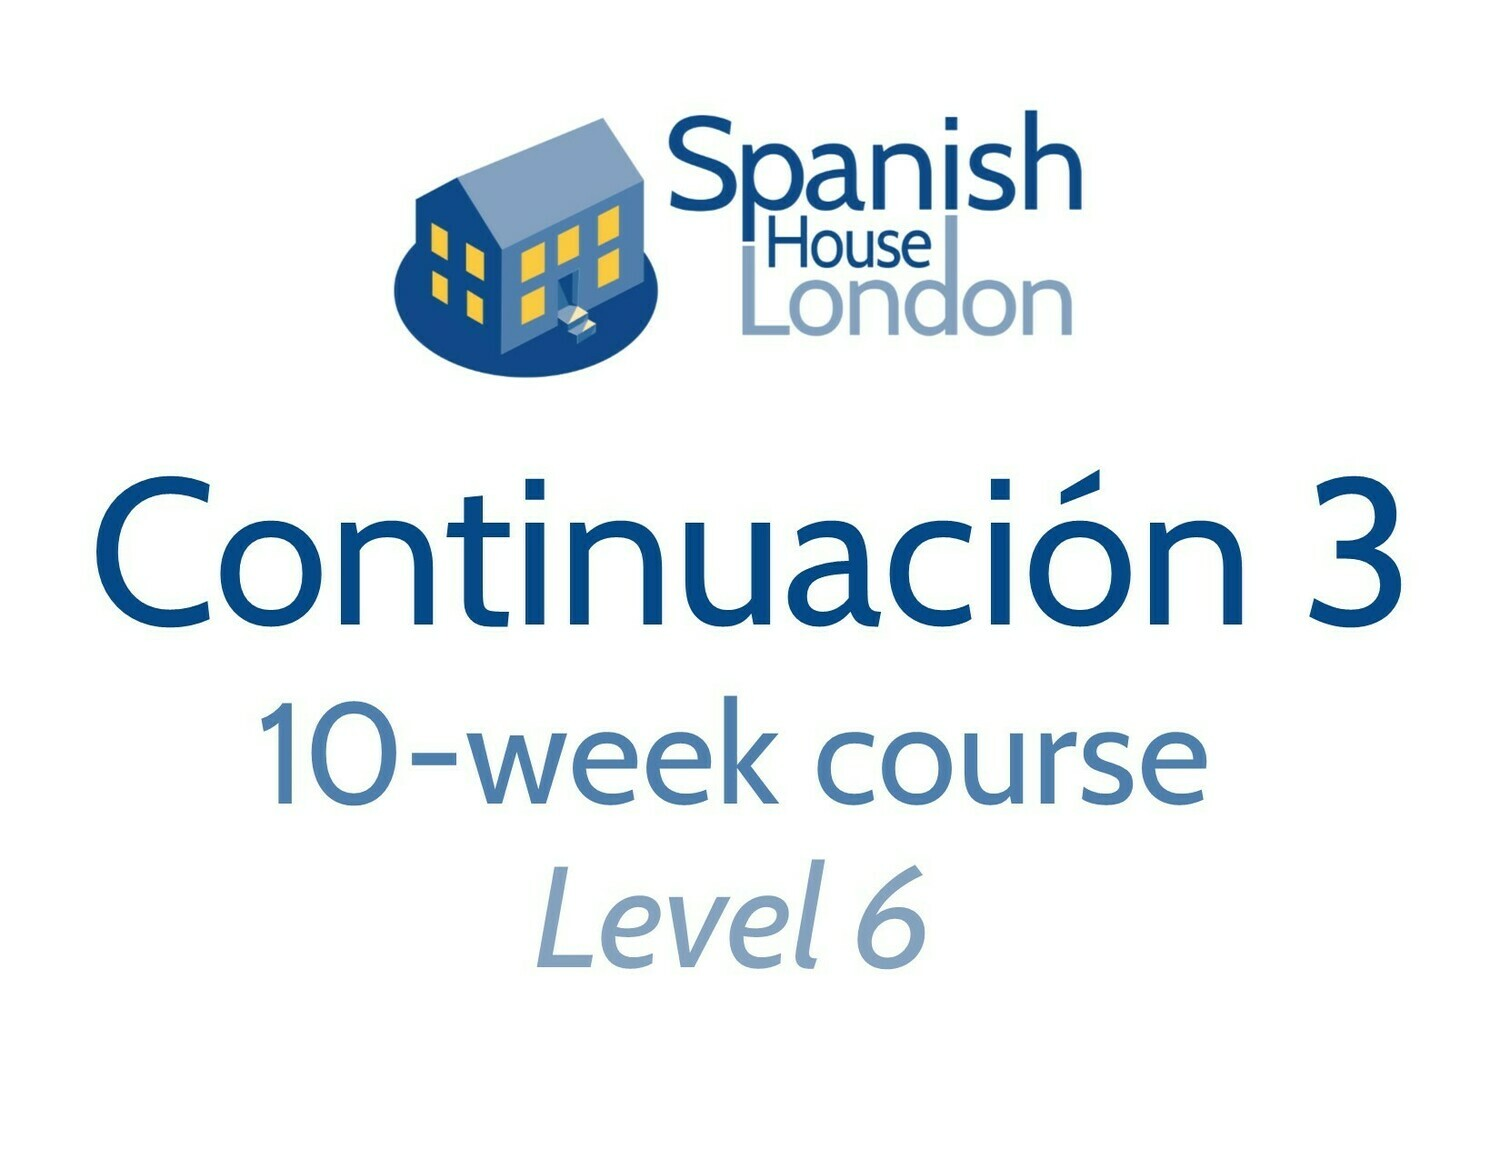 Continuacion 3 Course starting on 21st April at 6pm in Euston